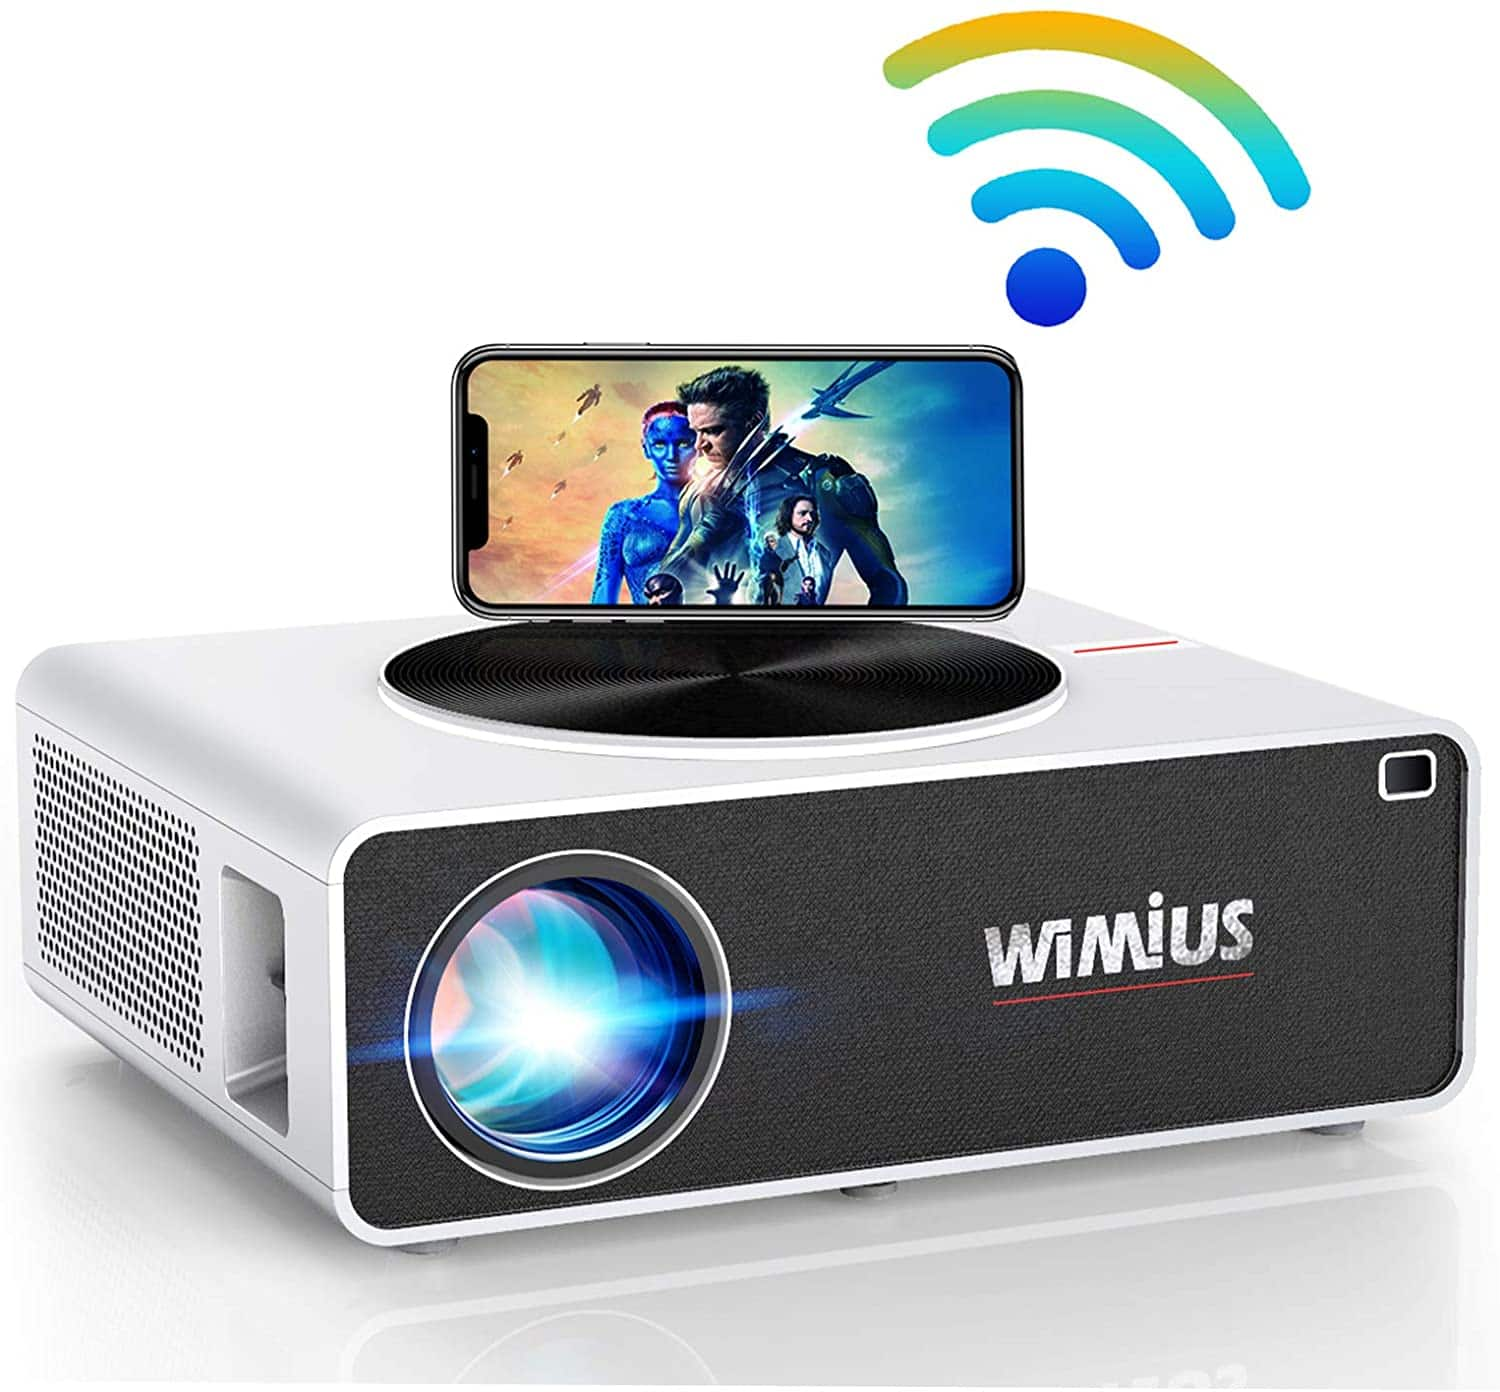 5G WiFi Projector, WiMiUS K3 7500L 4K Supported Video Projector Native 1920x1080 LED Projector  $155.99+FS